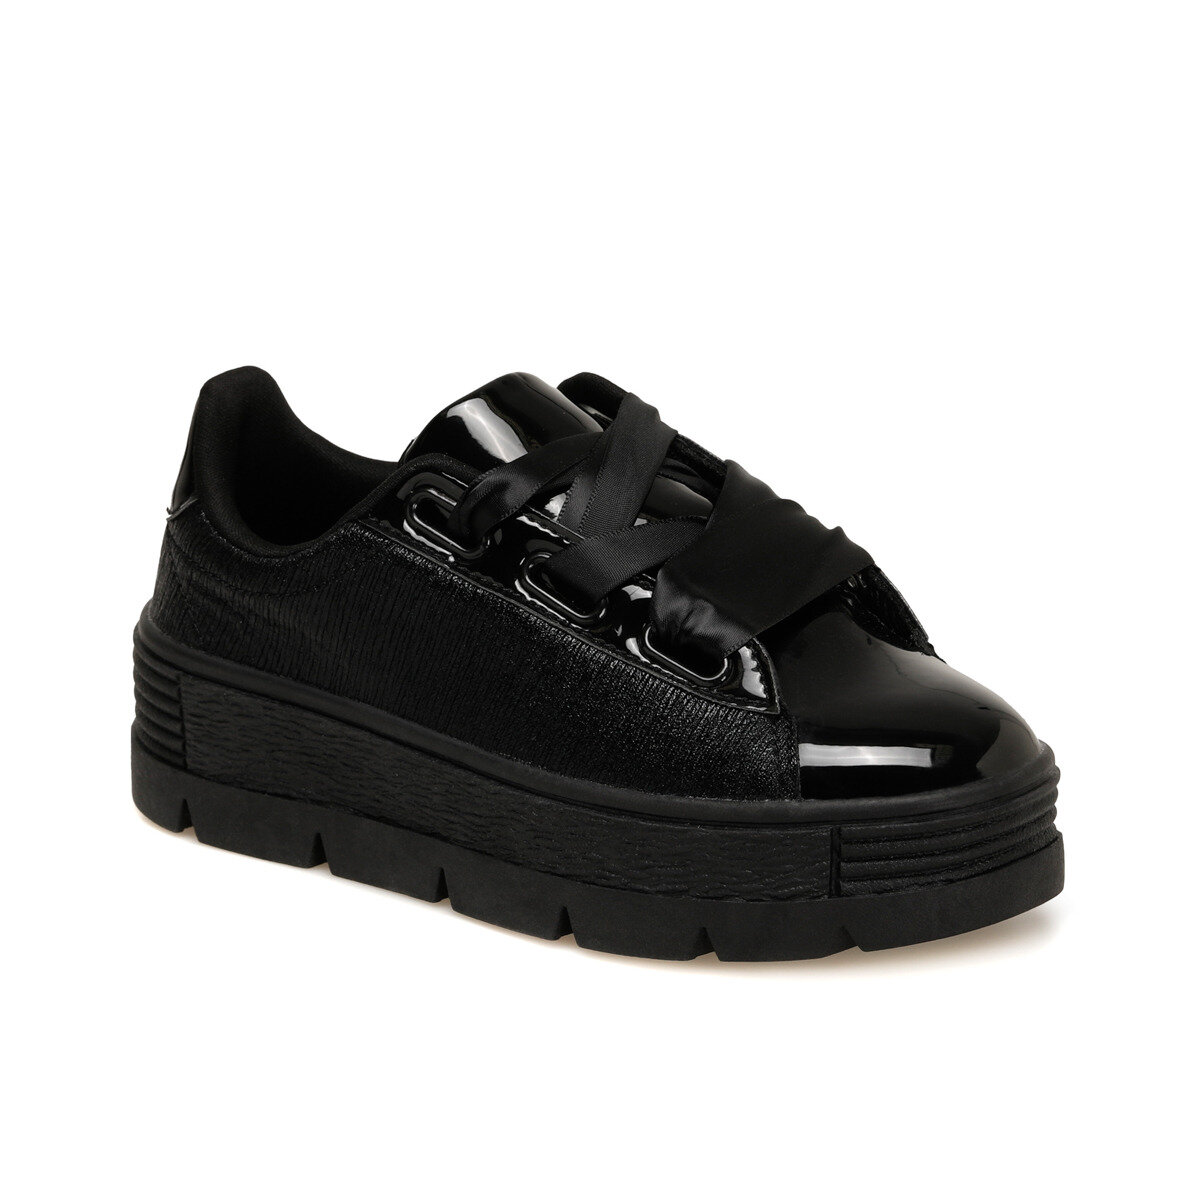 FLO 18K-336 Black Women 'S Sneaker Shoes BUTIGO